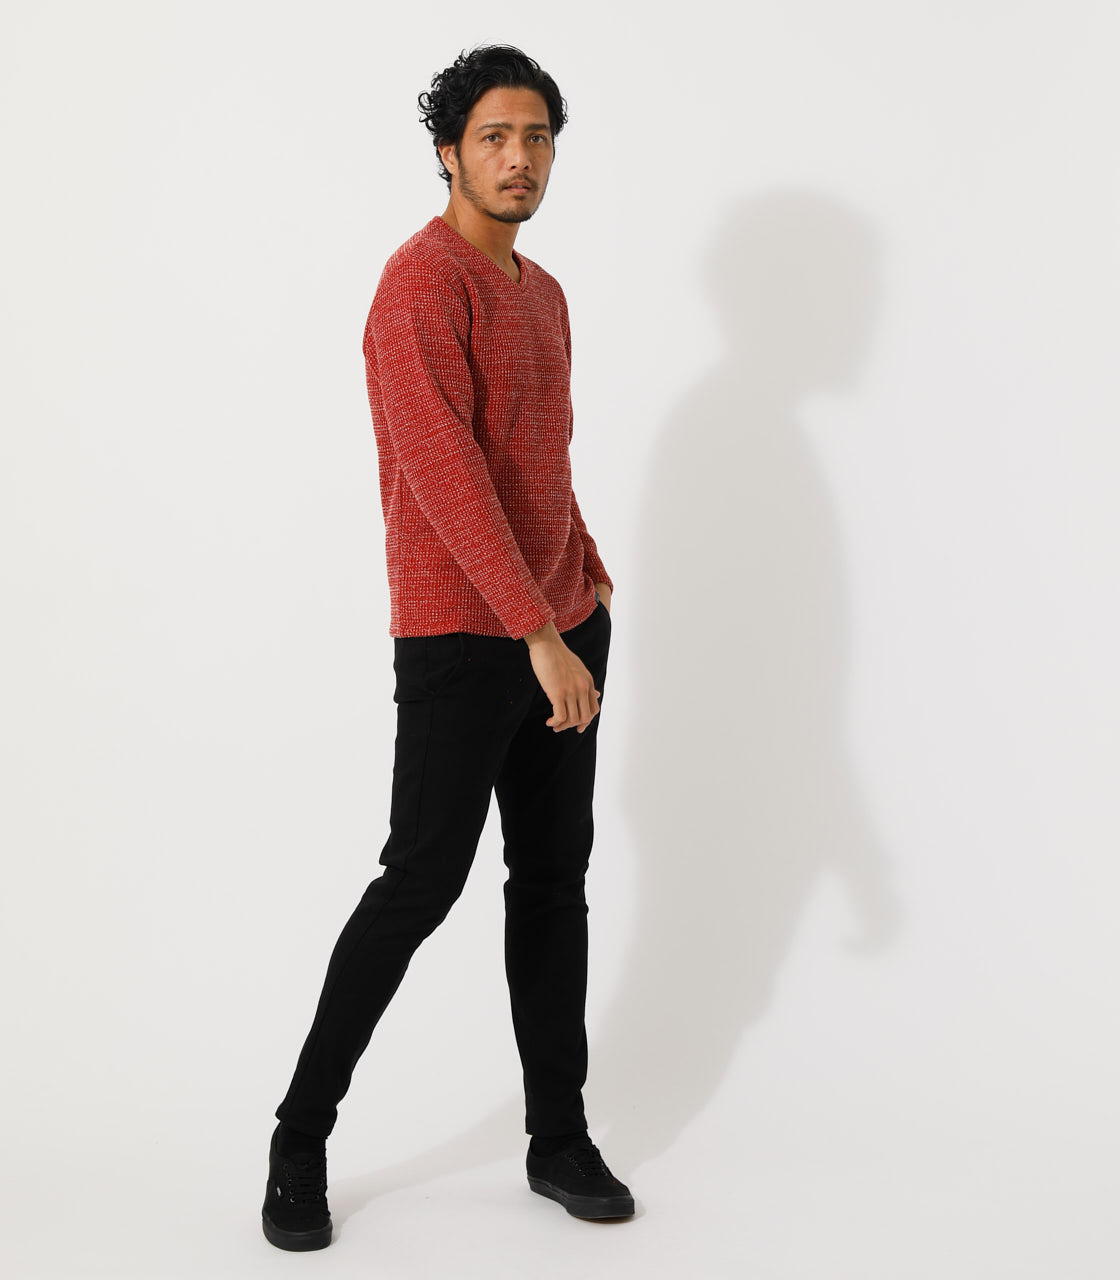 BRUSHED WAFFLE V/N LONG TEE/ブラッシュドワッフルVネックロングTシャツ 詳細画像 柄RED 3